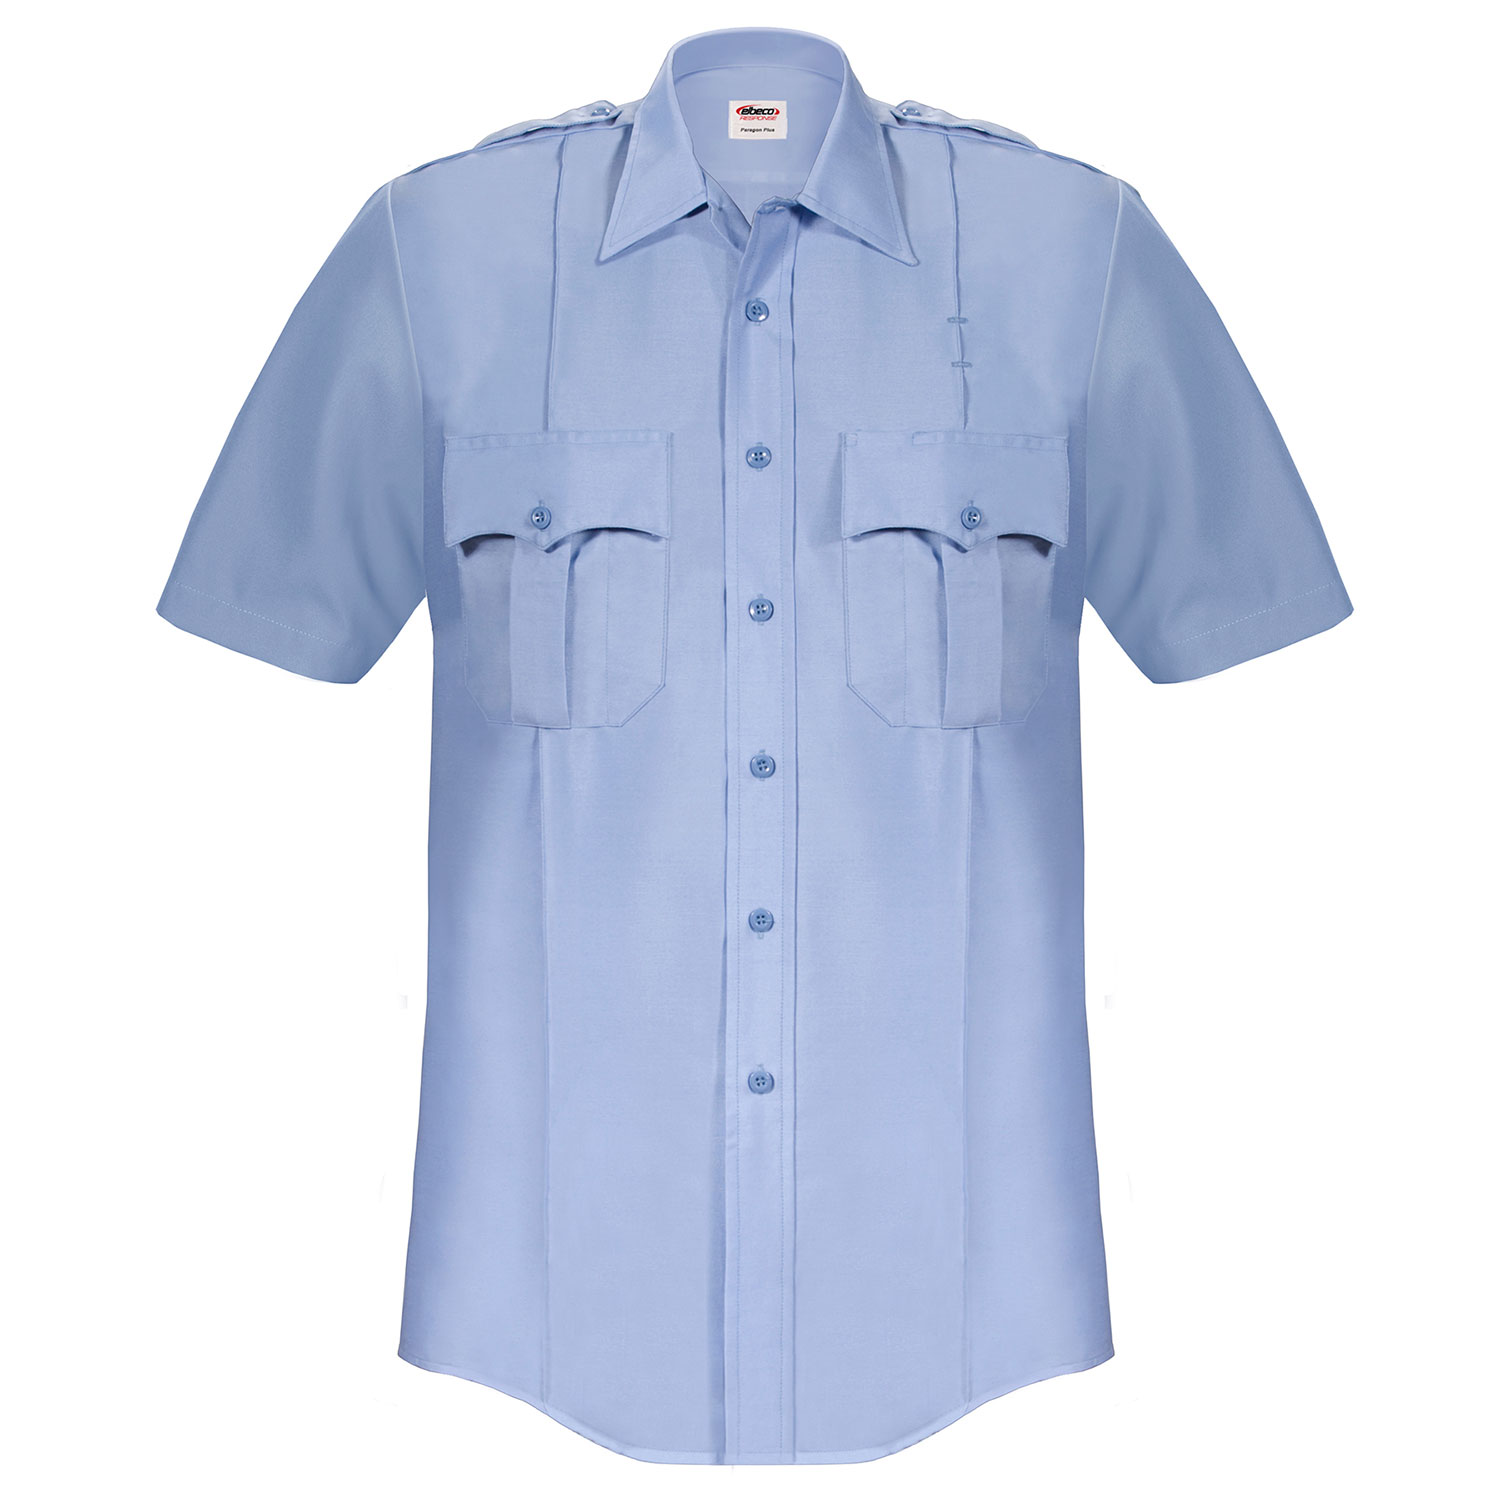 Elbeco Paragon Plus Short Sleeve Shirt